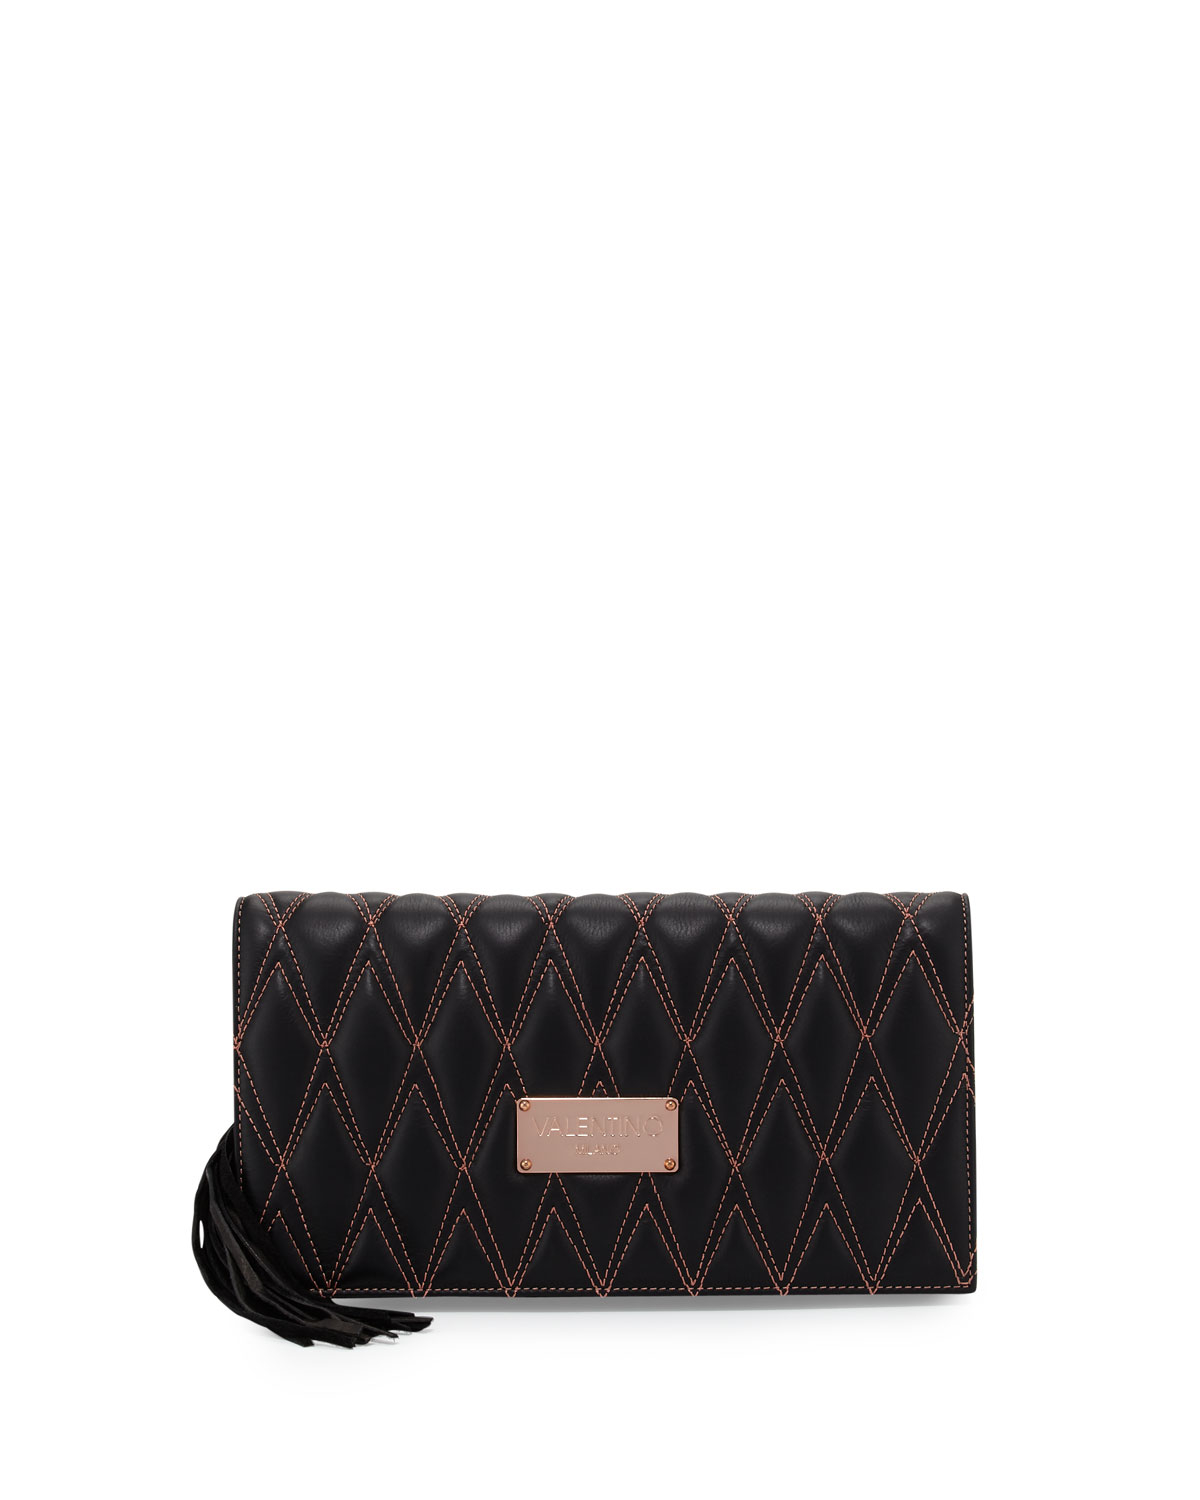 Valentino by mario valentino Lena D Quilted Leather Clutch Bag in ... : quilted leather clutch - Adamdwight.com